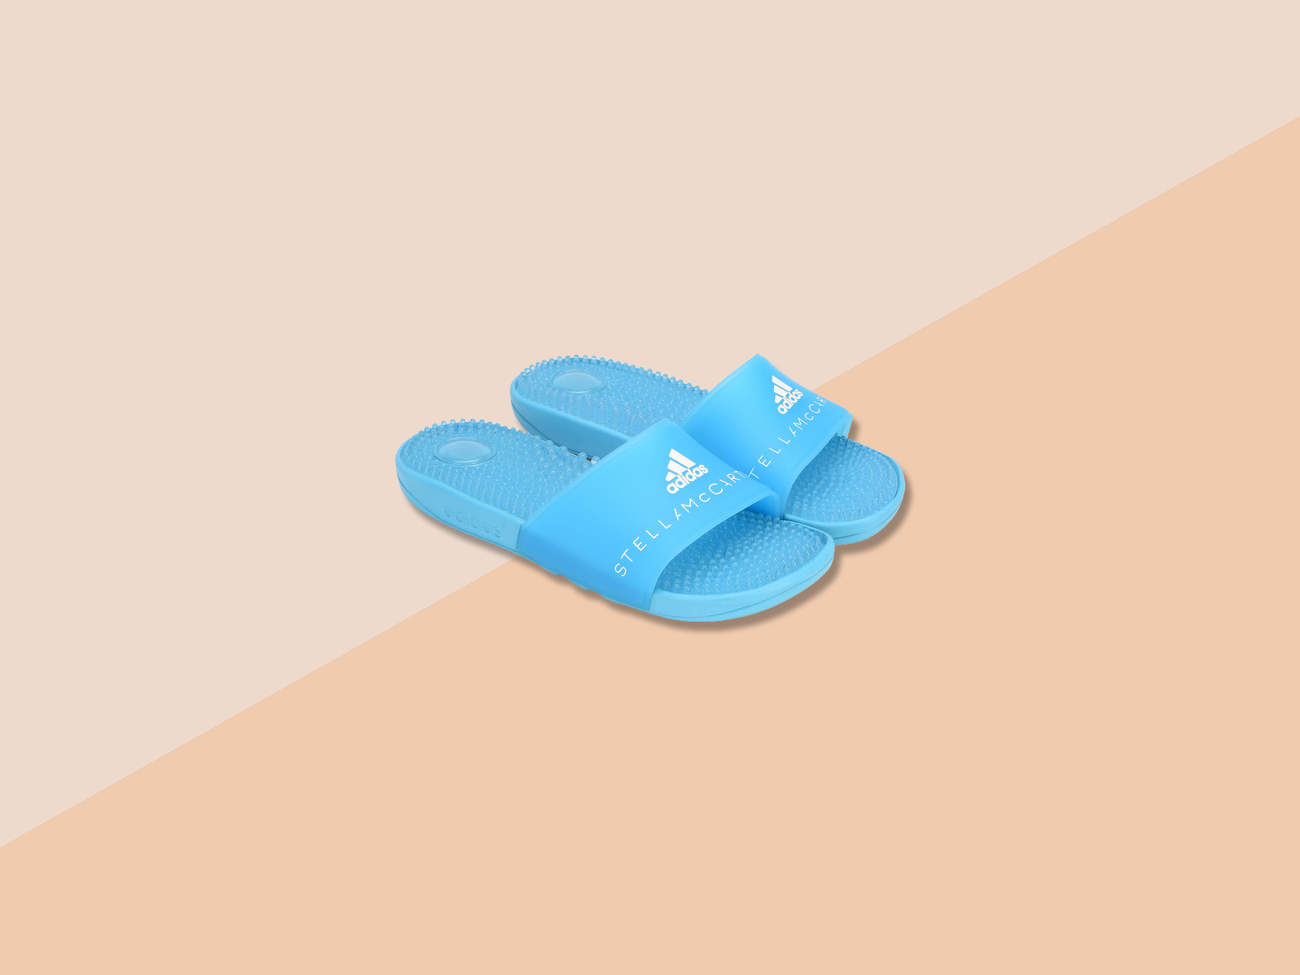 stella-mccartney-adidas-slides-main